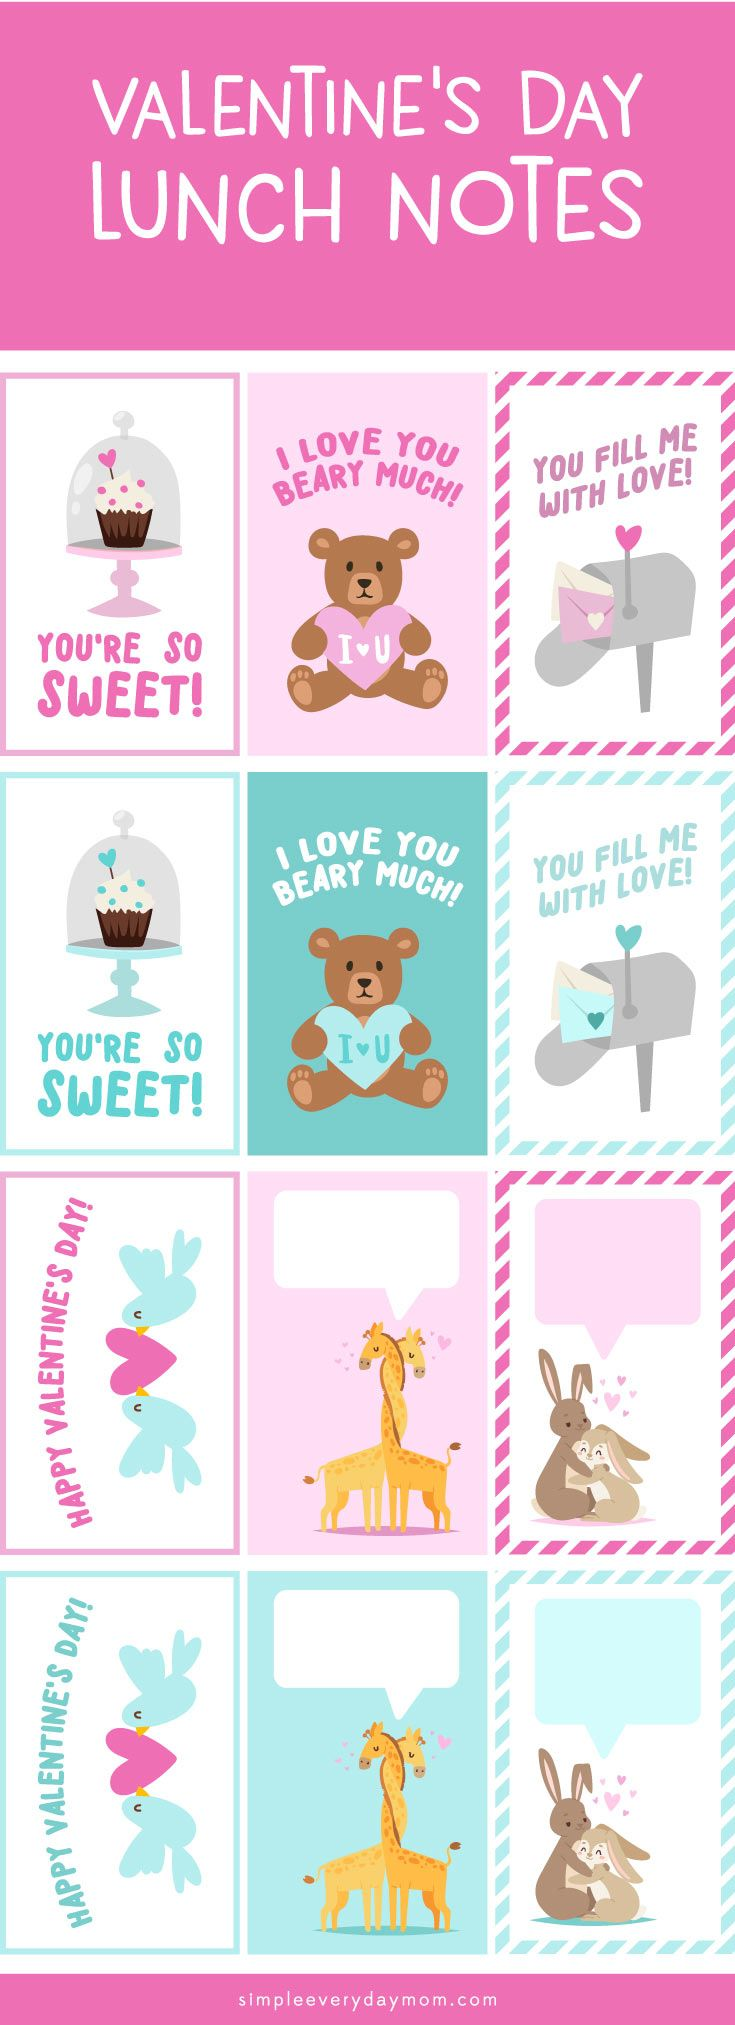 Best 1000+ Printables images on Pinterest | Cards, Families and Fonts